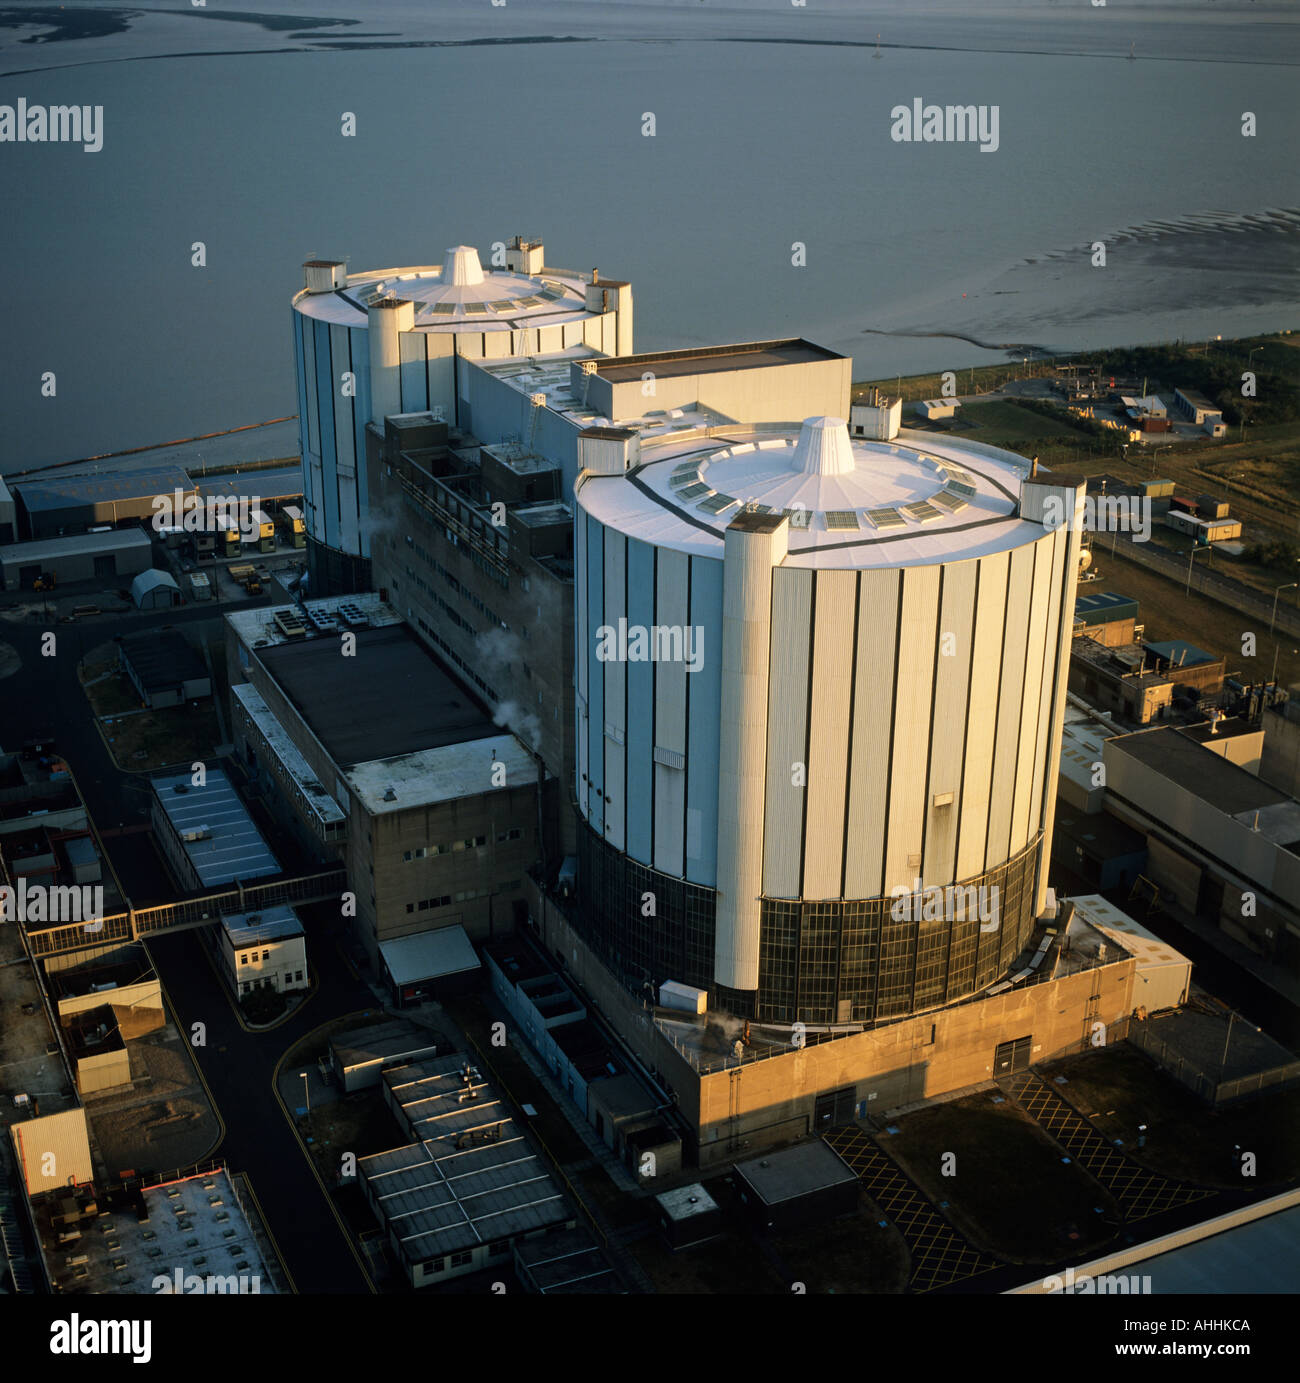 Oldbury Nuclear Power Station Severn Estuary UK aerial view - Stock Image